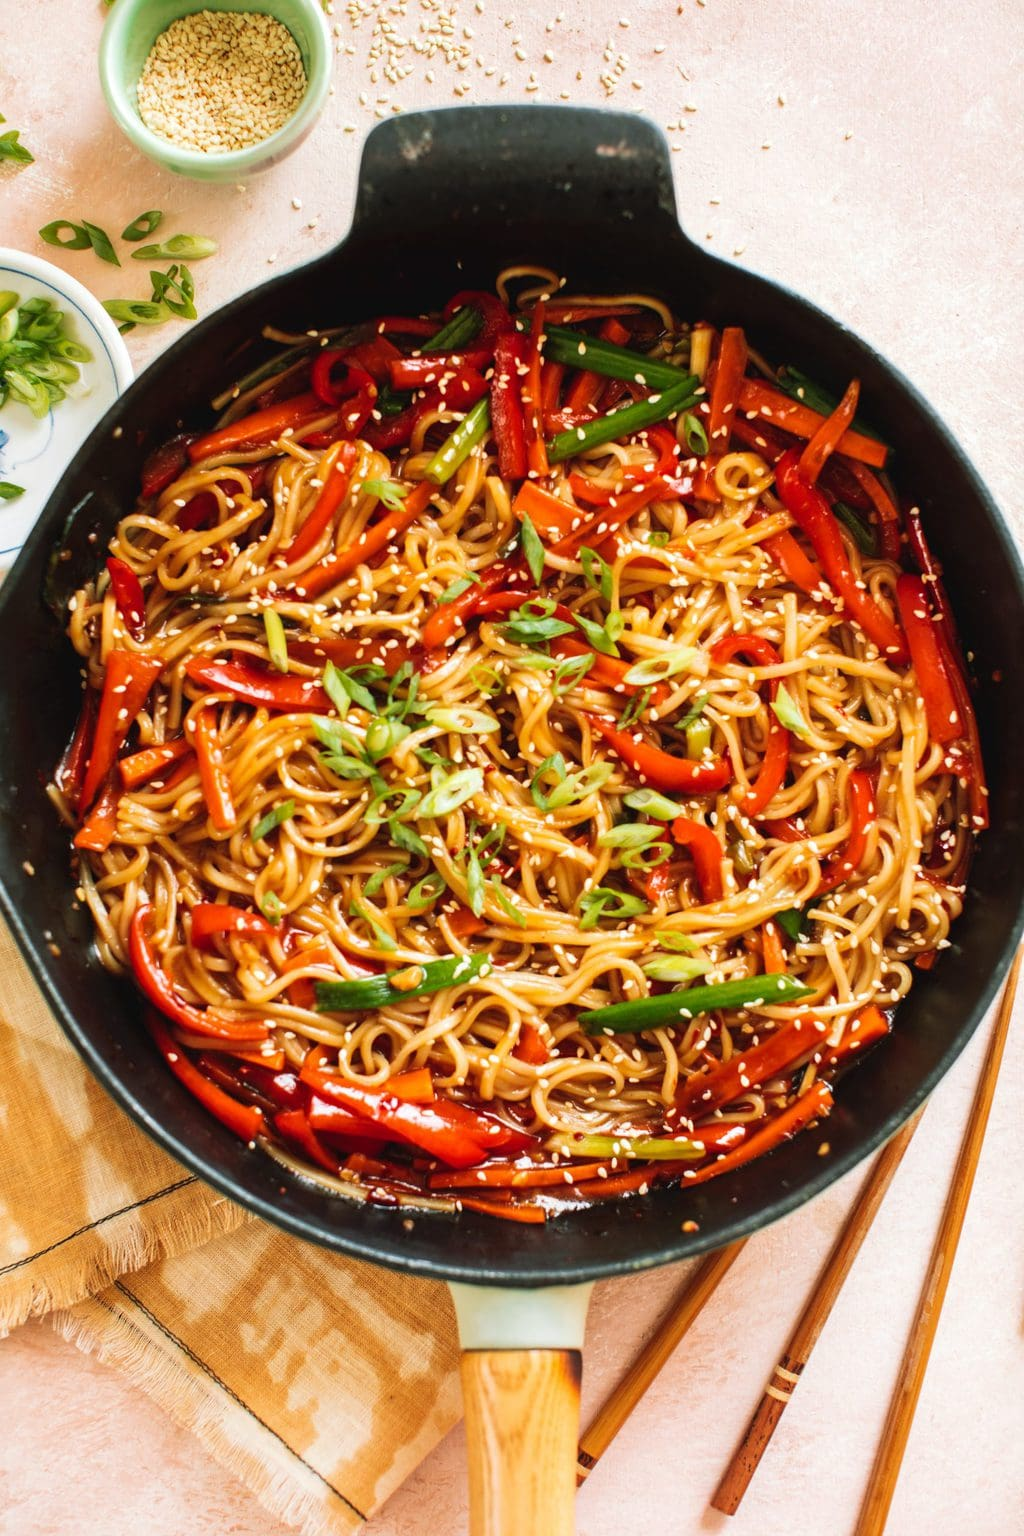 lo mein noodles and vegetables stir fried in cast iron pan with chopsticks